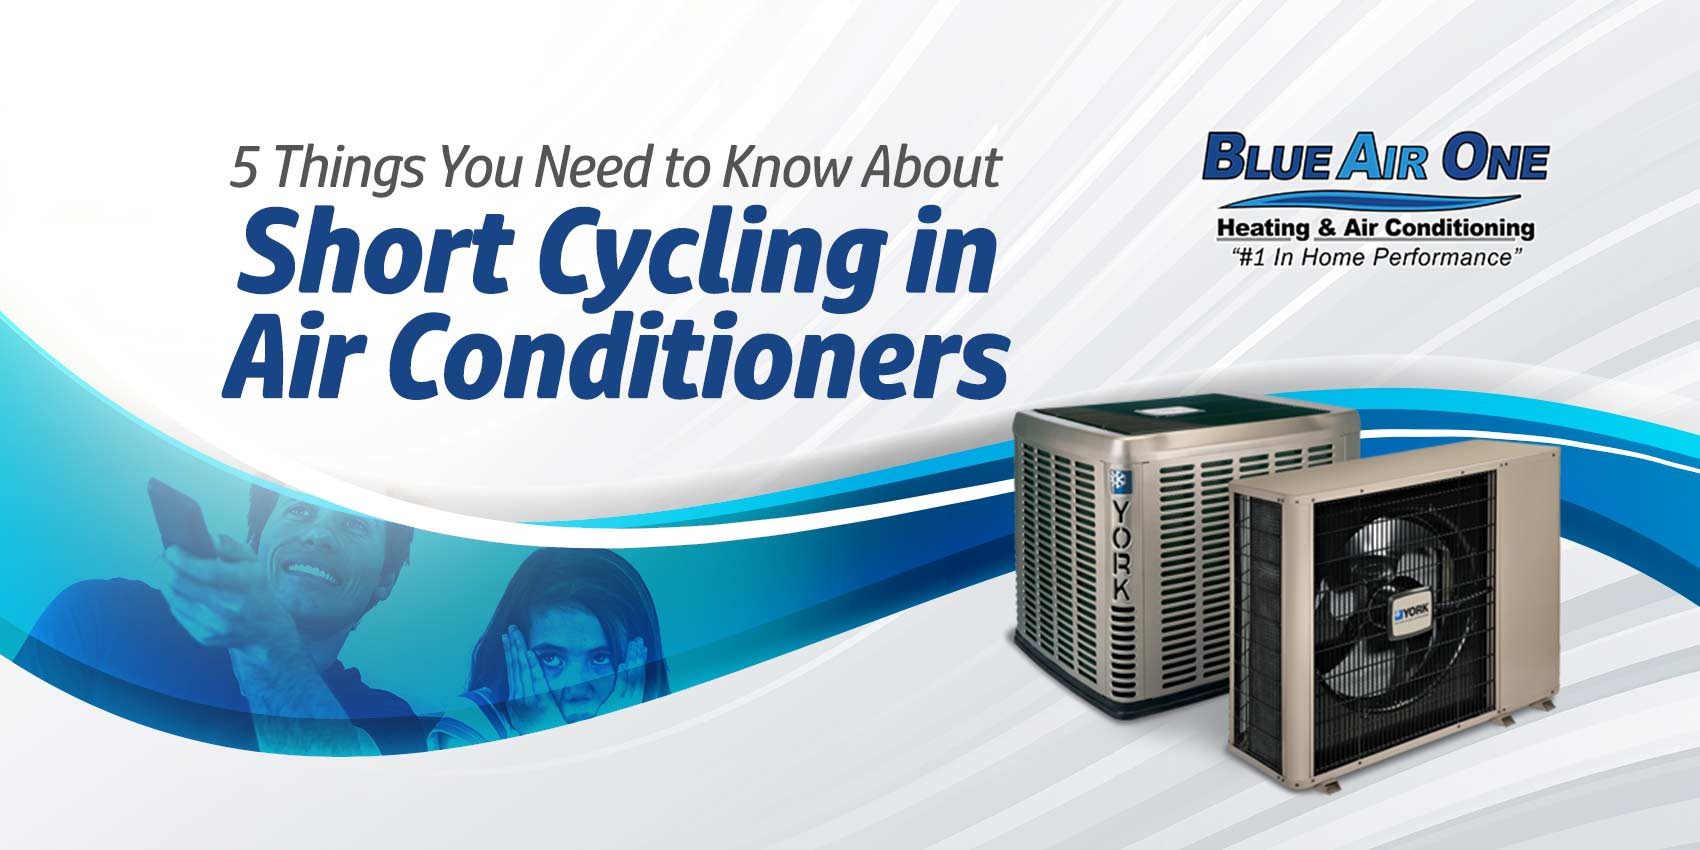 5 Things You Need to Know About Short Cycling in Air Conditioners